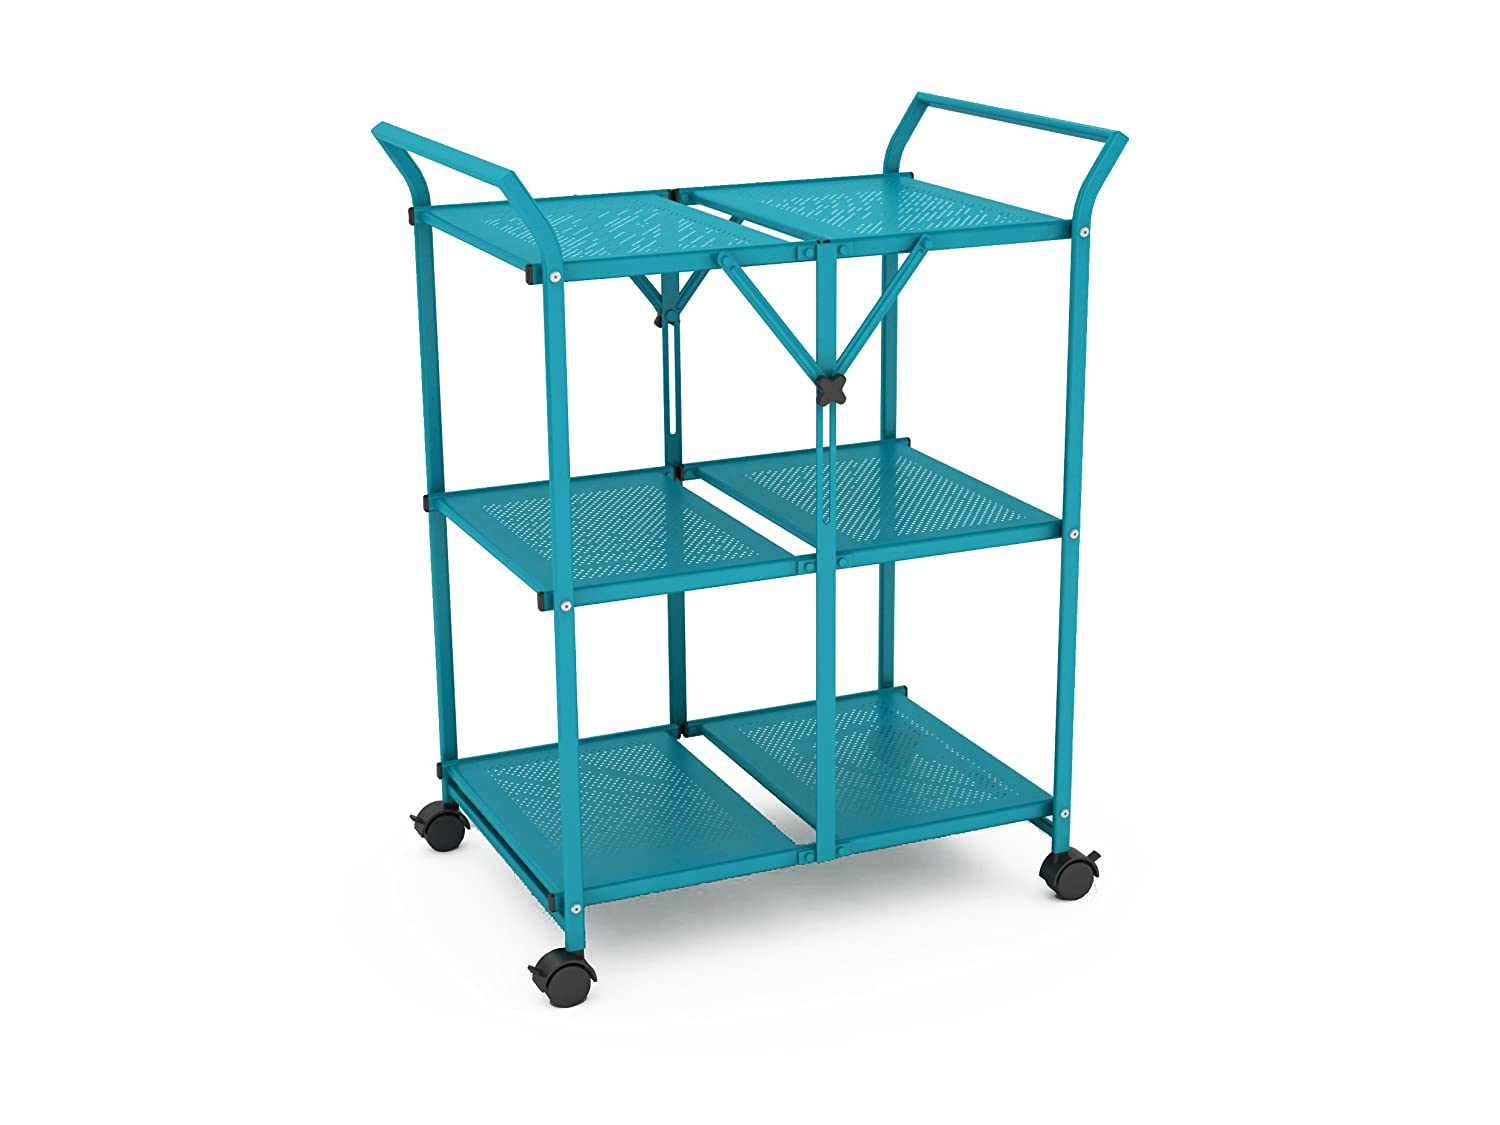 Amazon dar living folding cart with handle capri breeze amazon dar living folding cart with handle capri breeze kitchen dining jeuxipadfo Choice Image